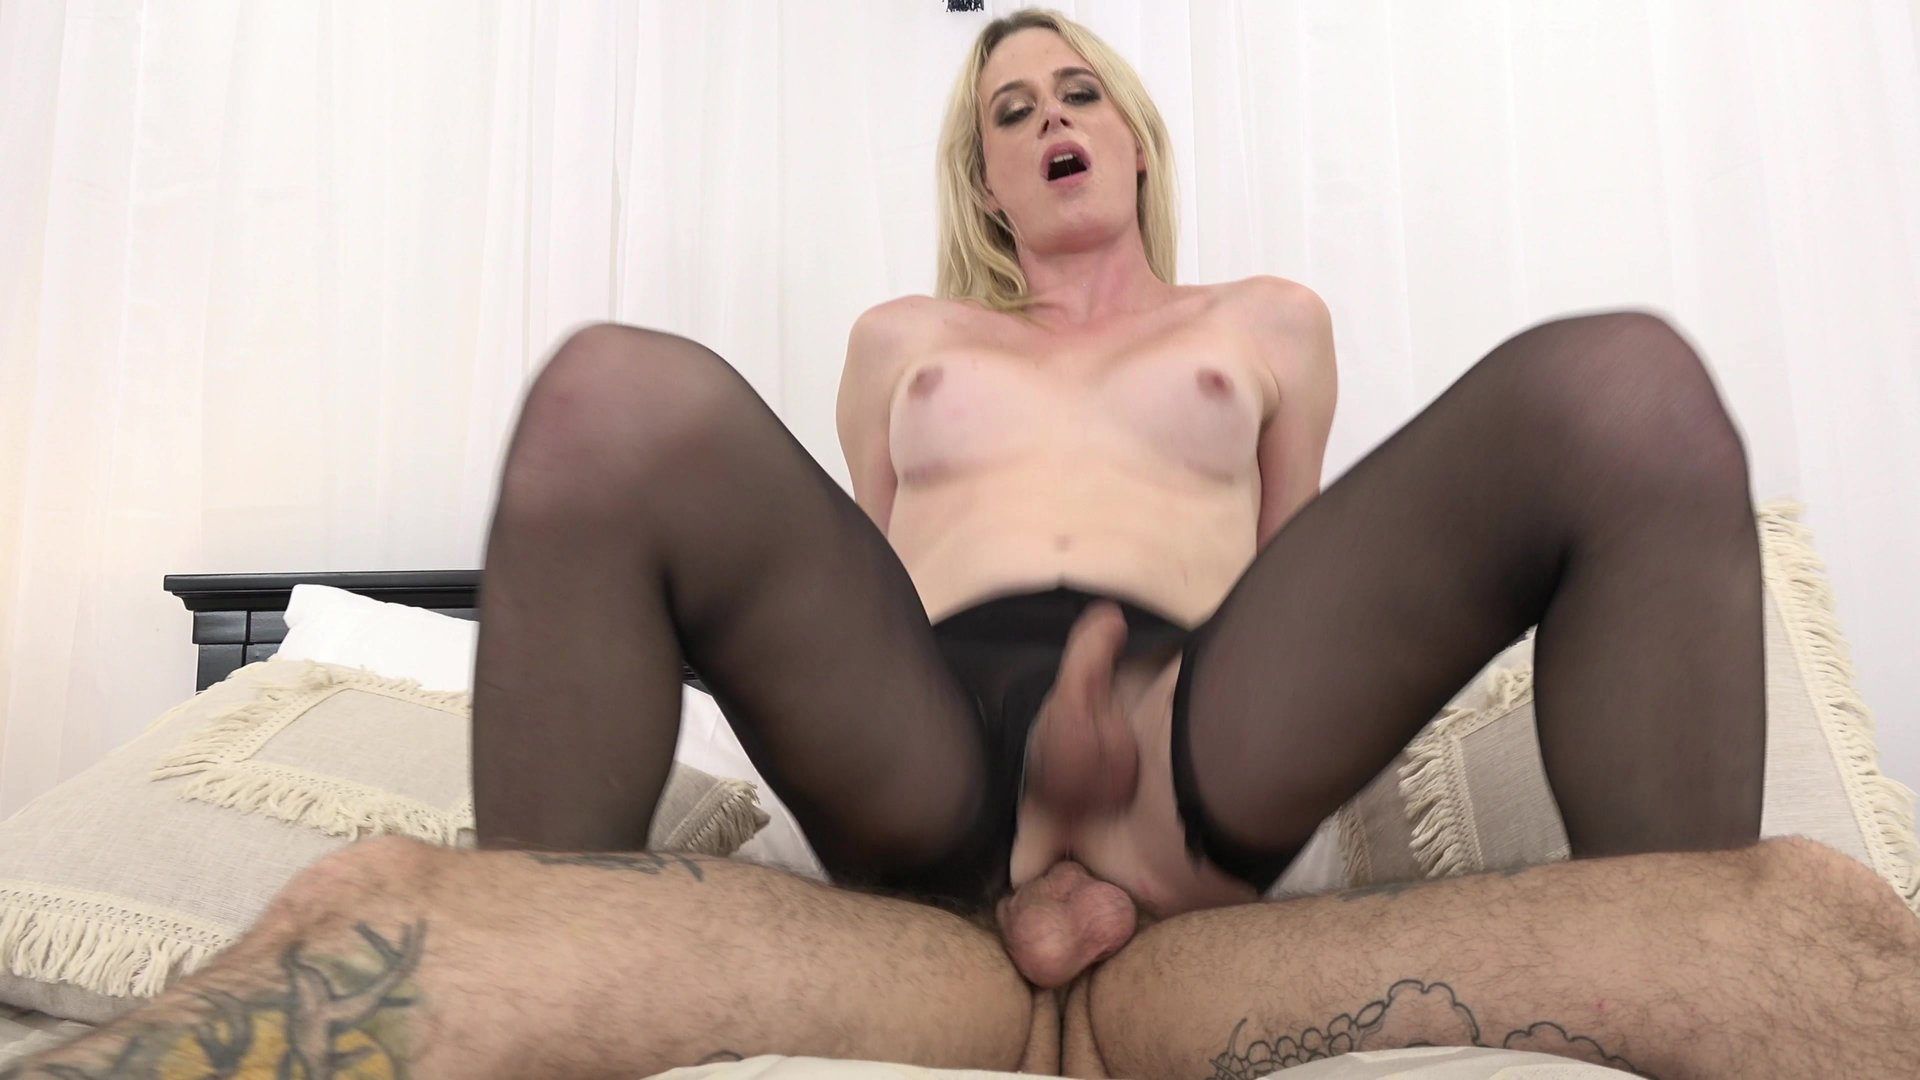 Gianna michaels solo anal